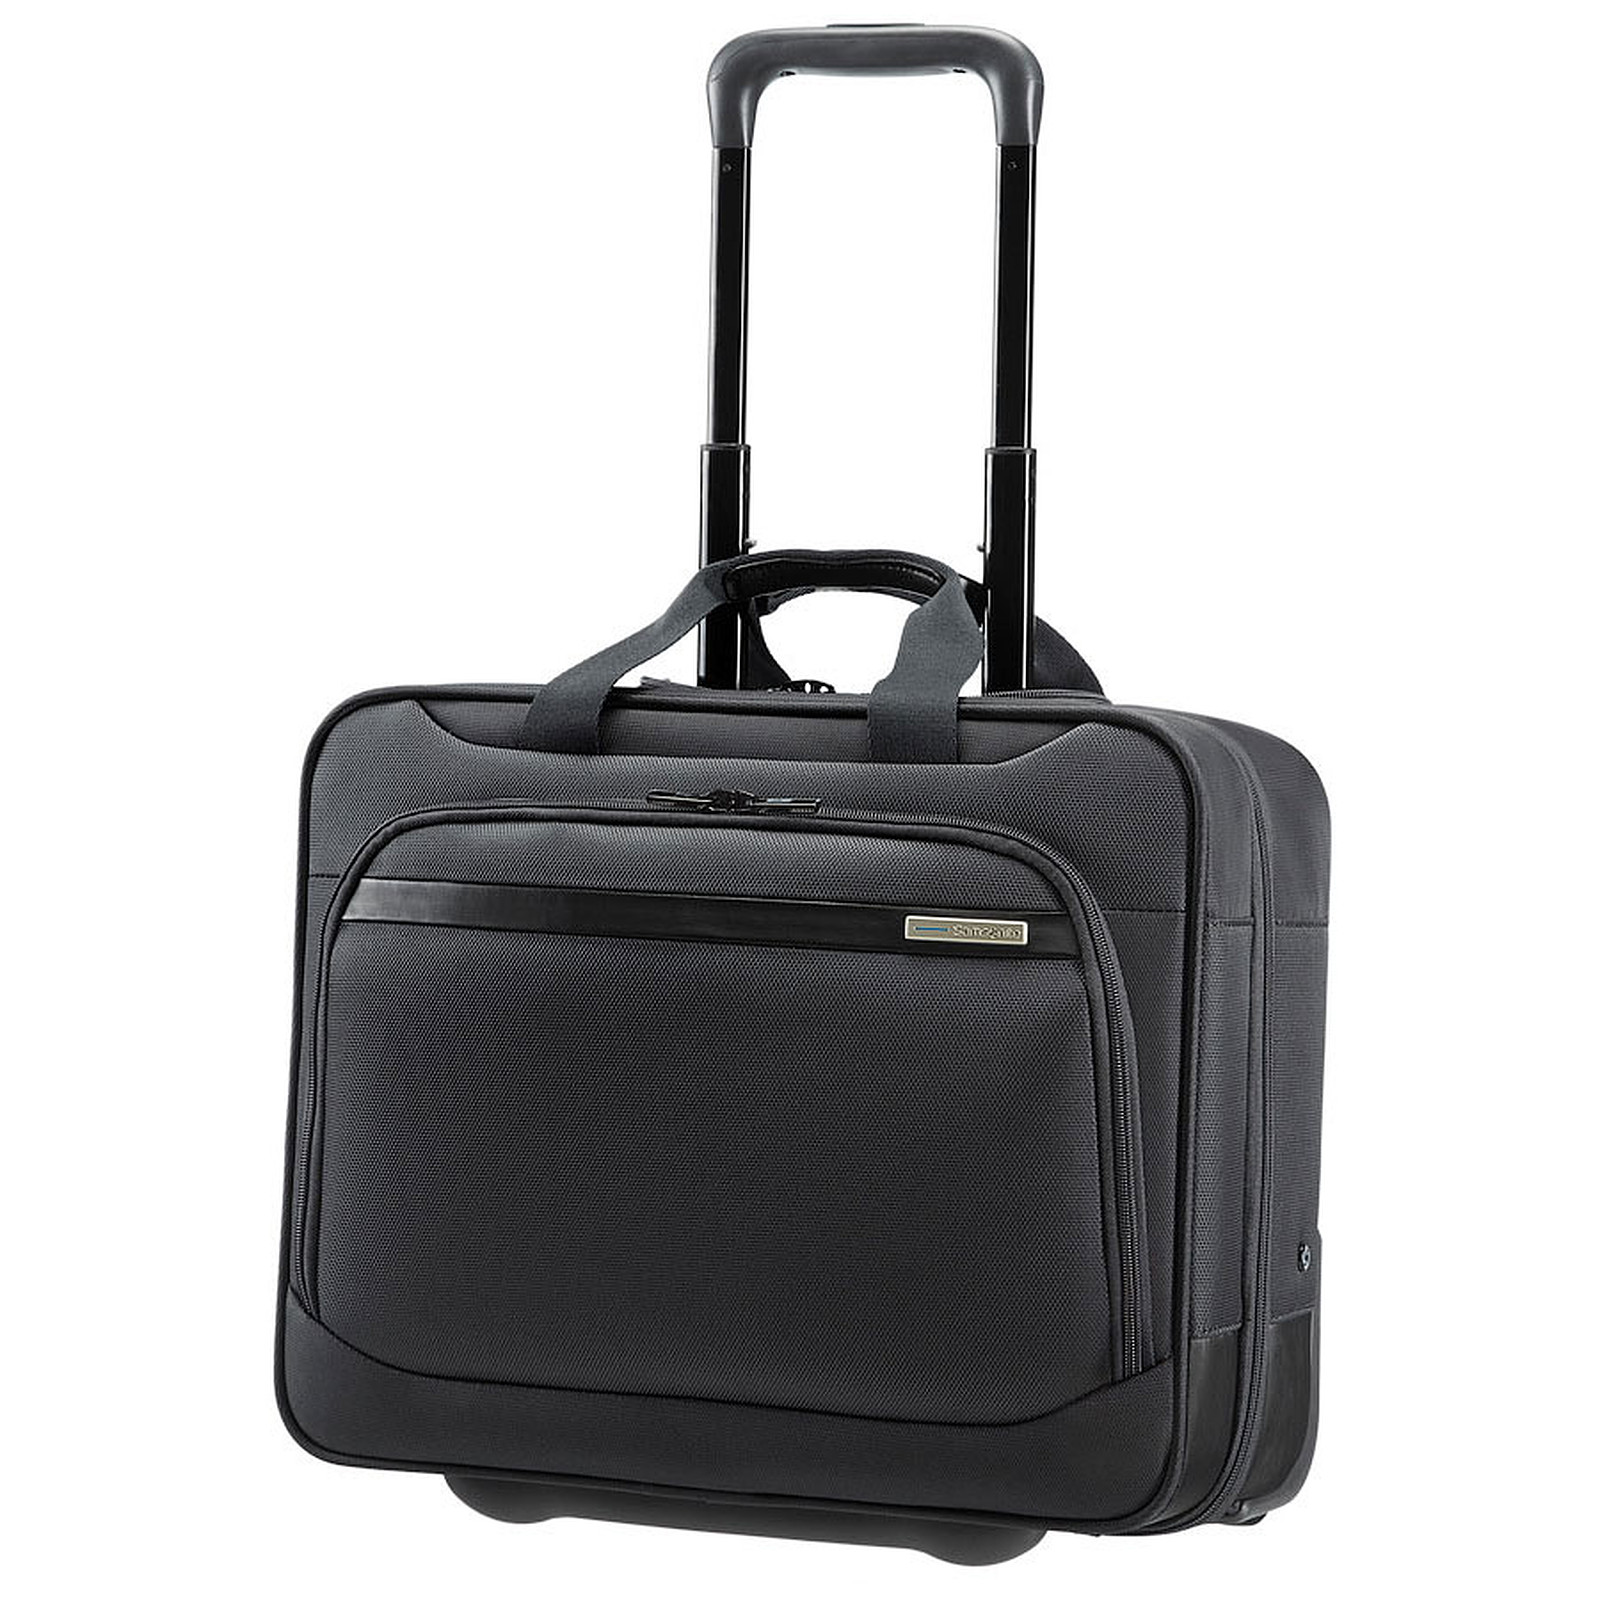 Samsonite Vectura Trolley 15.6""